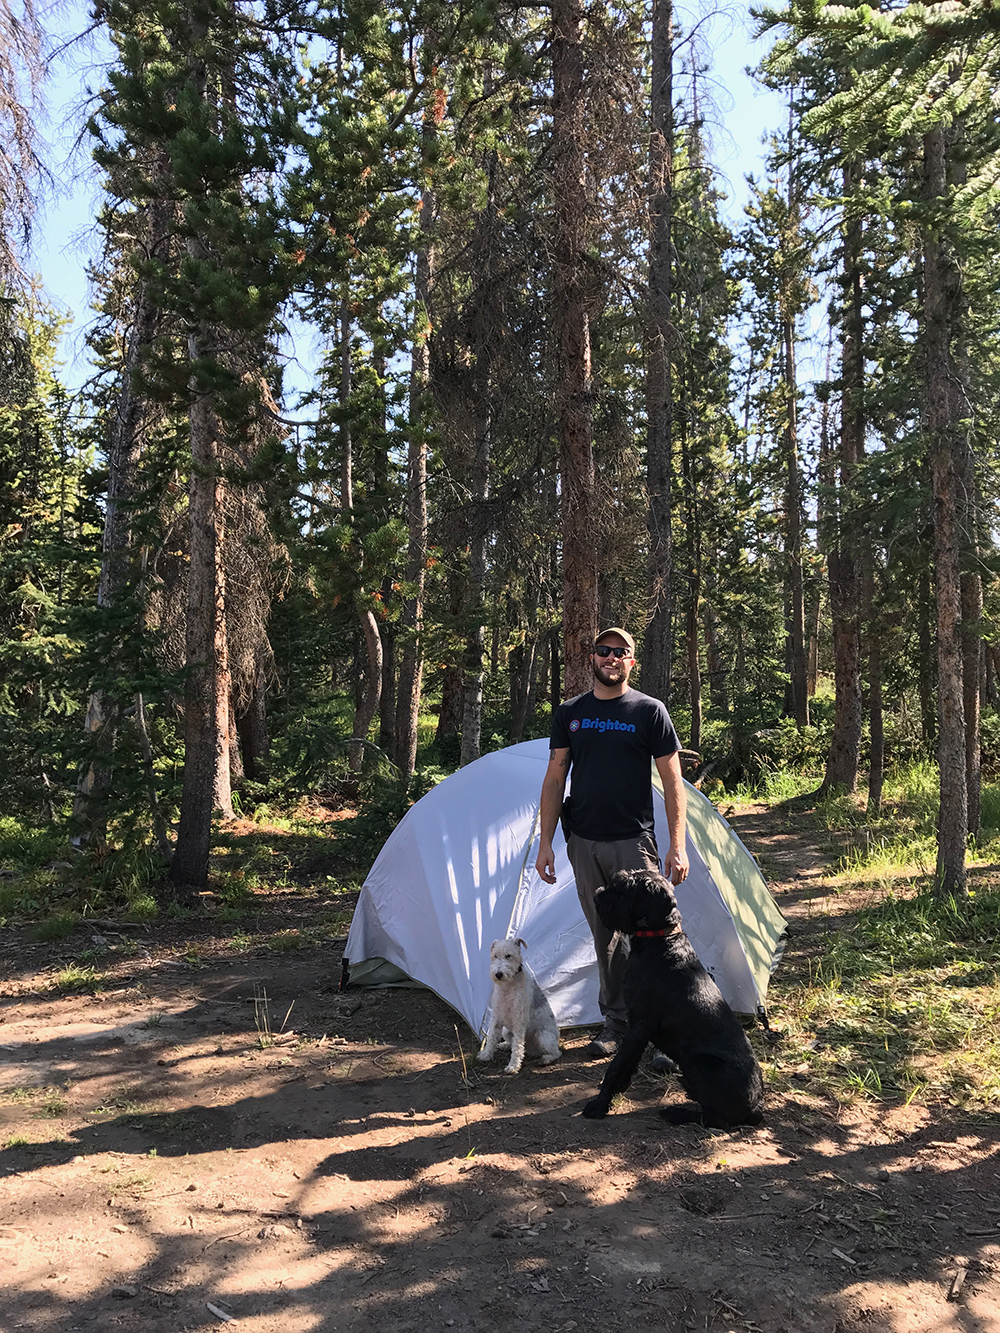 gibson camping trip